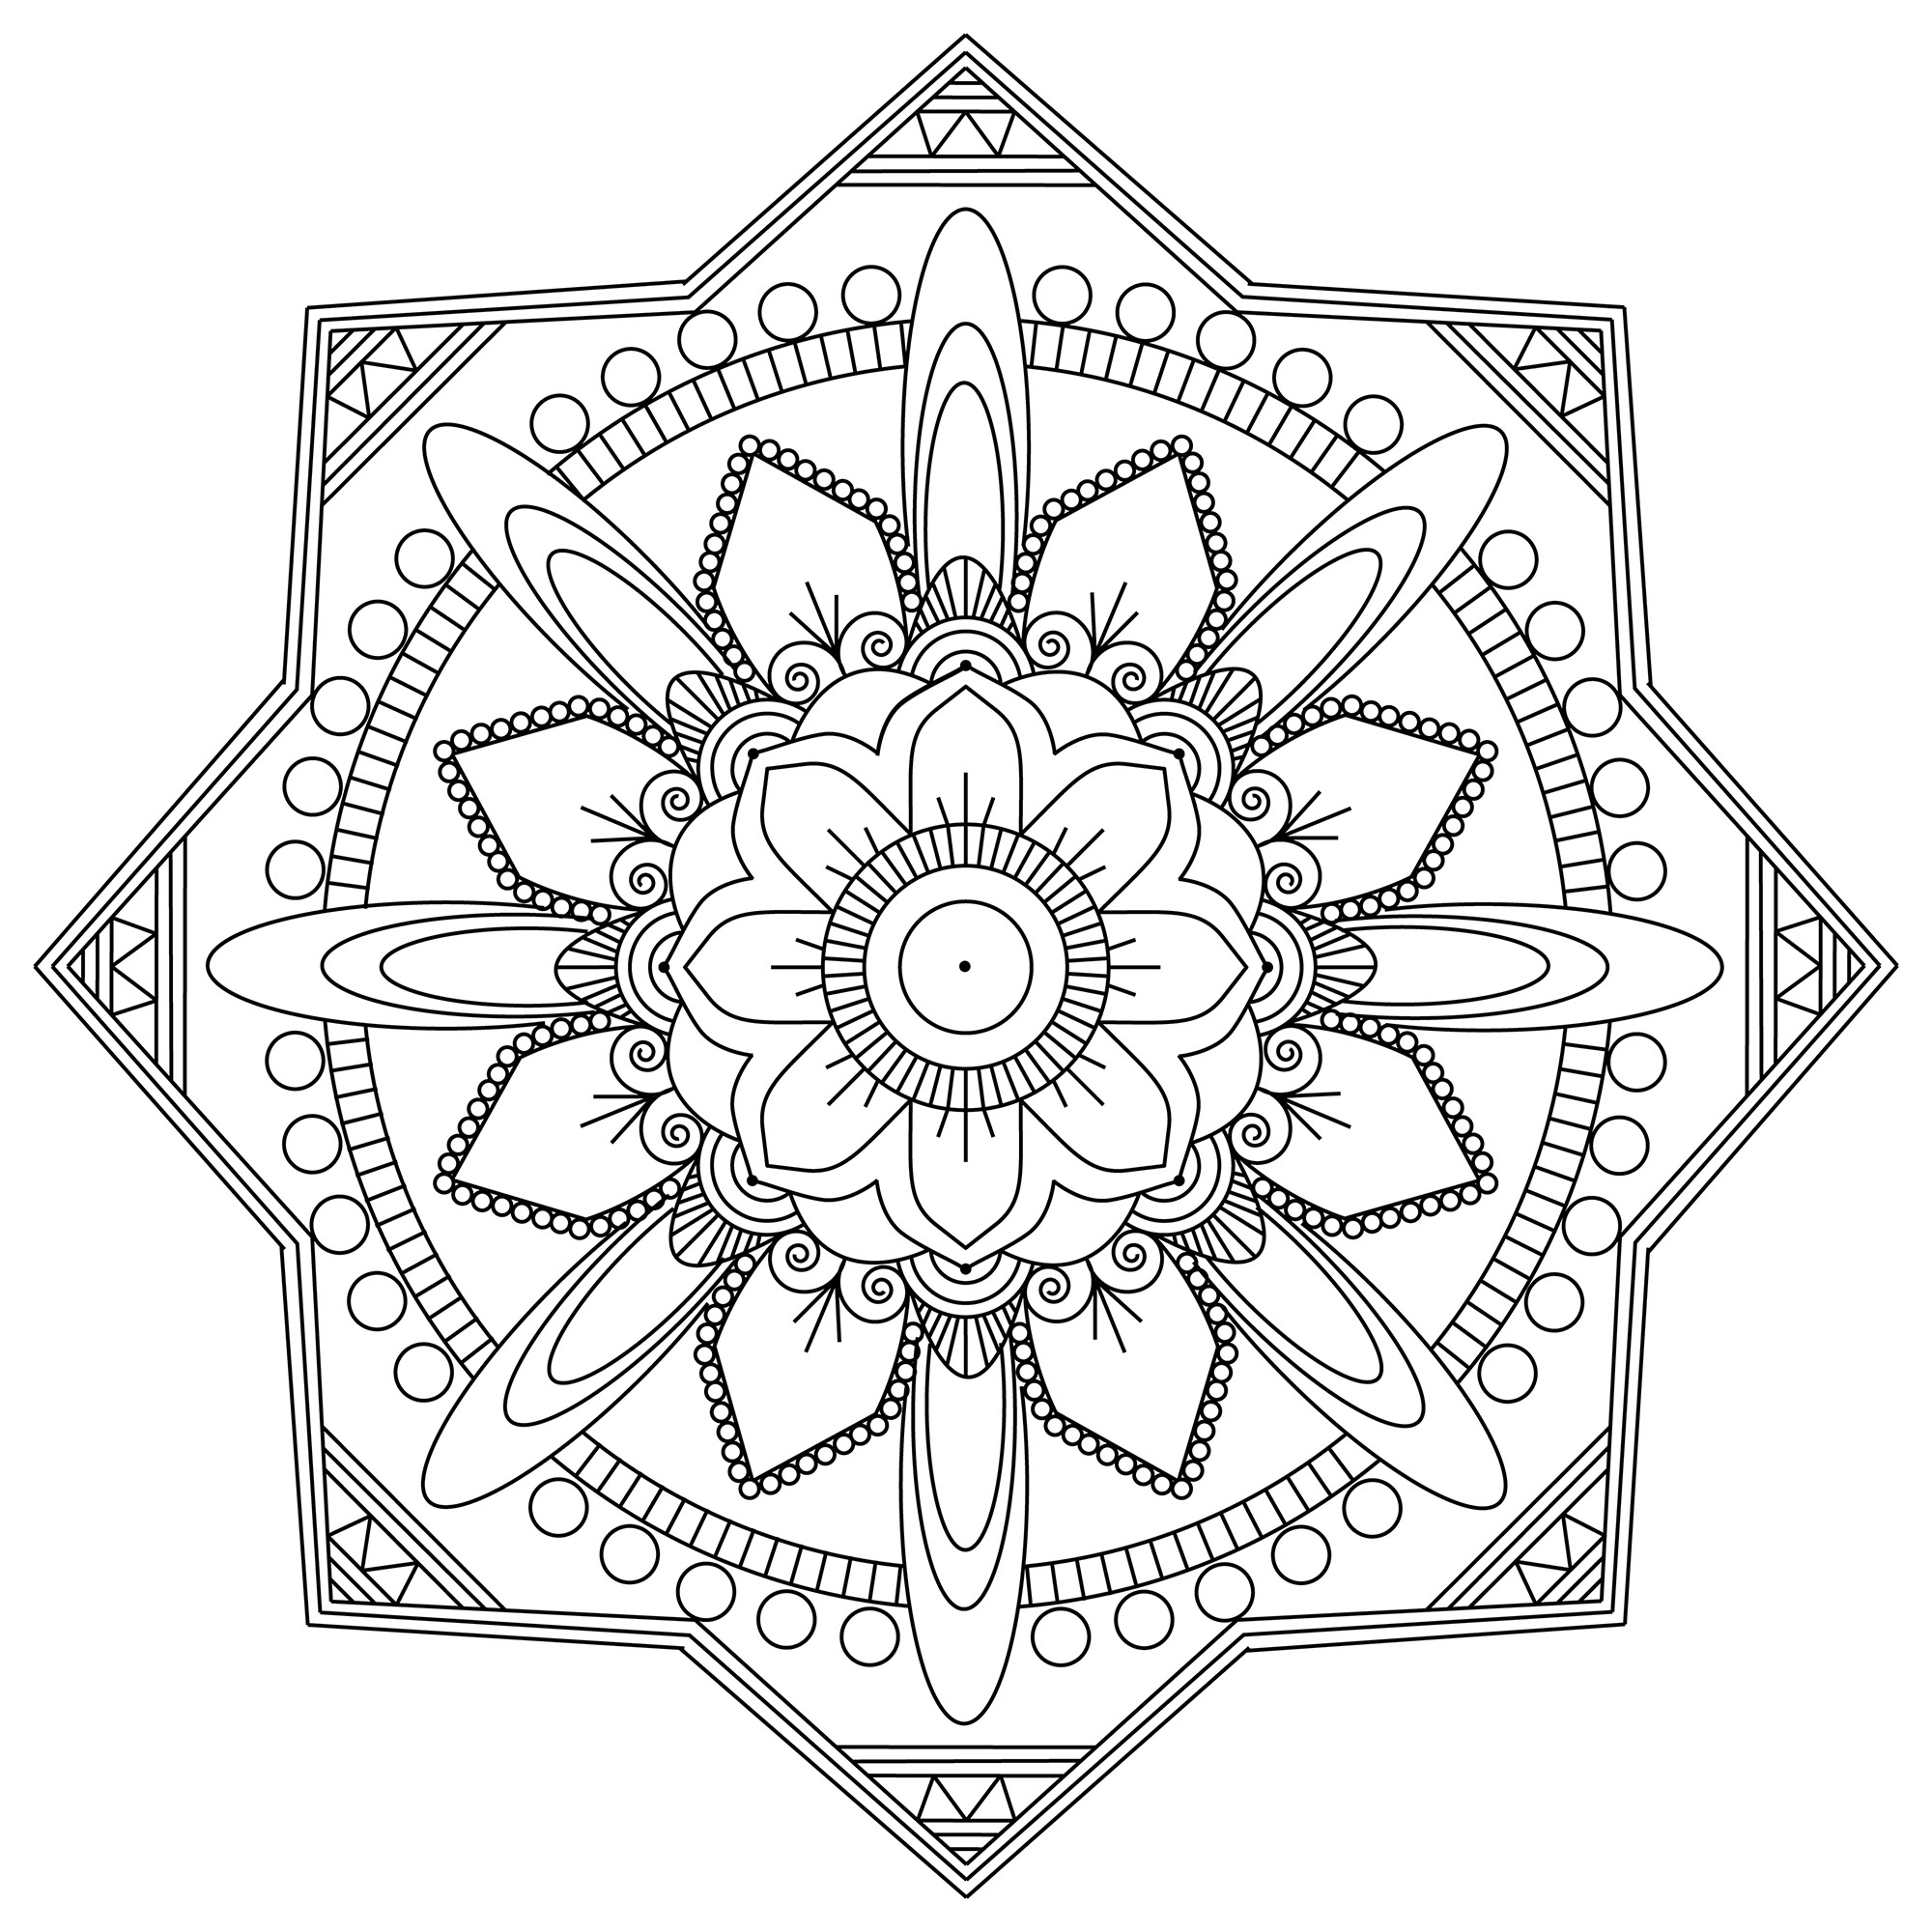 Express your soul, your passion, and let yourself be guided by your creativity to turn this Mandala into ART ! Mandalas are Buddhist devotional images often deemed a diagram or symbol of an ideal universe.